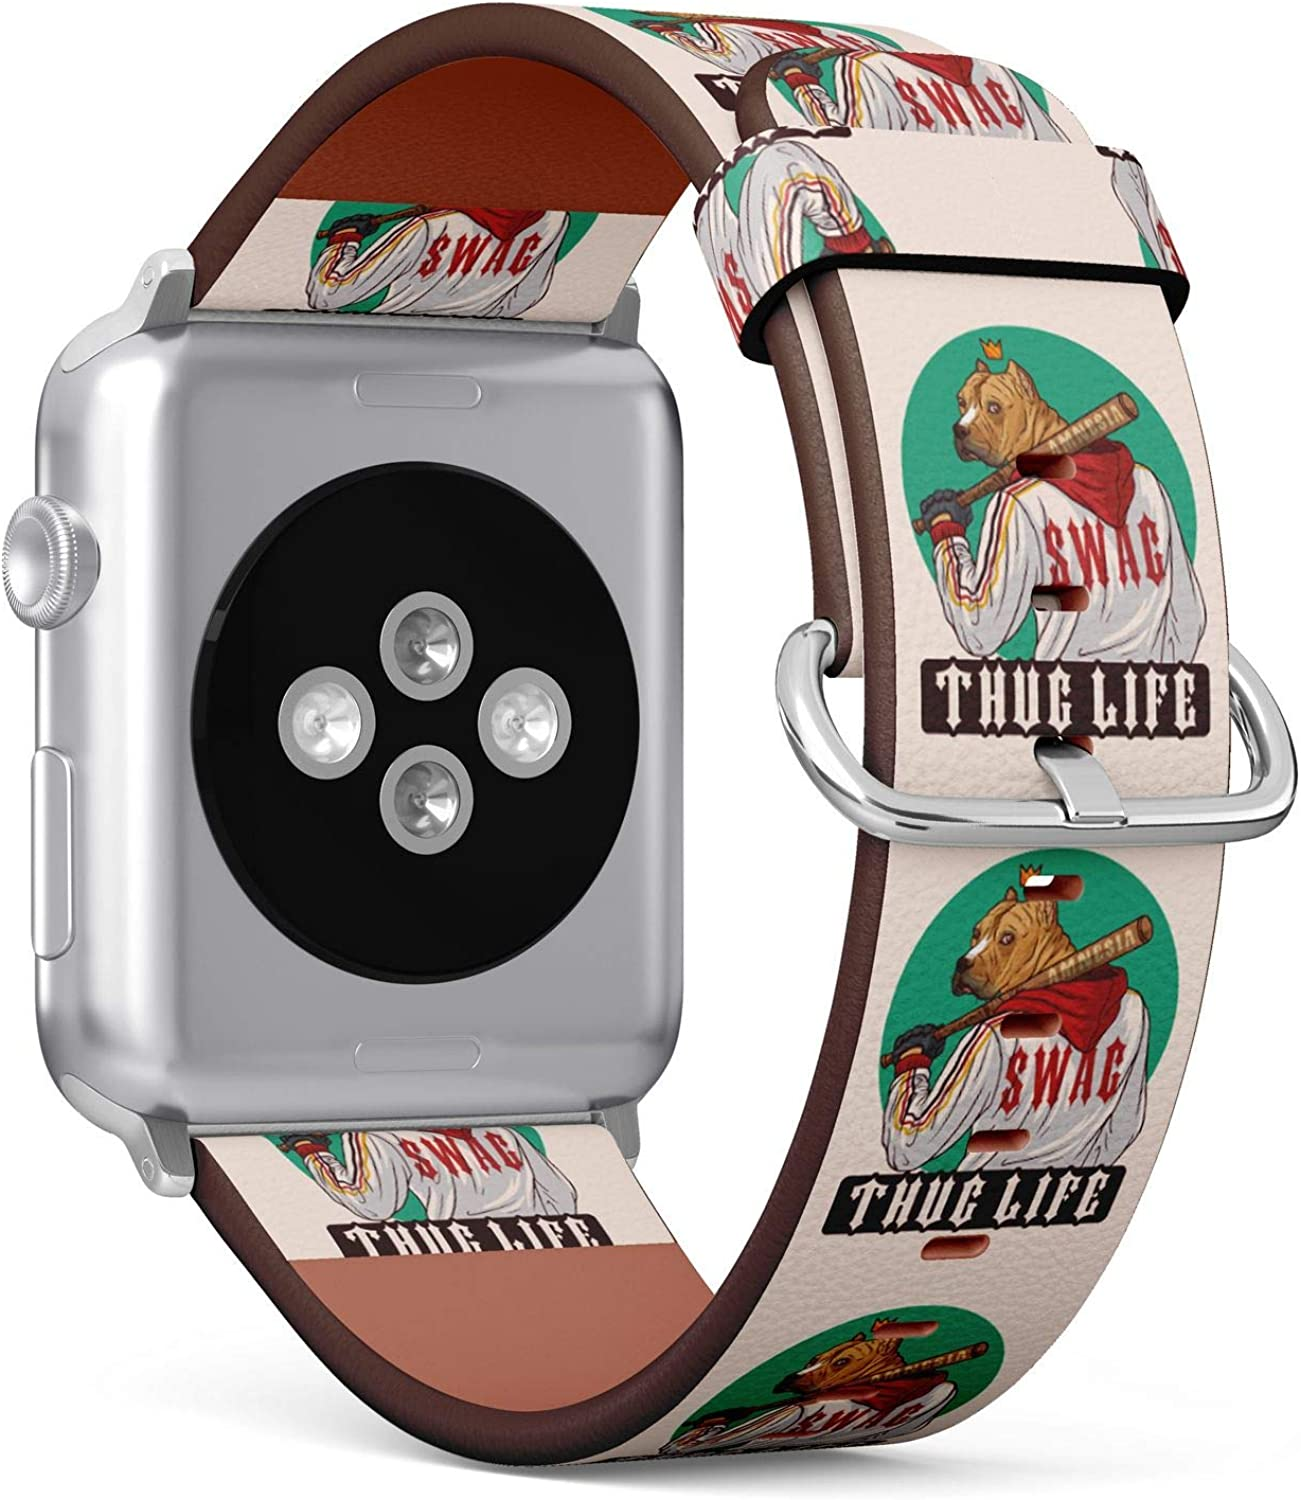 (Thug Life Swag Brutal Pitbull Gangster with Baseball bat) Patterned Leather Wristband Strap for Apple Watch Series 4/3/2/1 gen,Replacement for iWatch 38mm / 40mm Bands